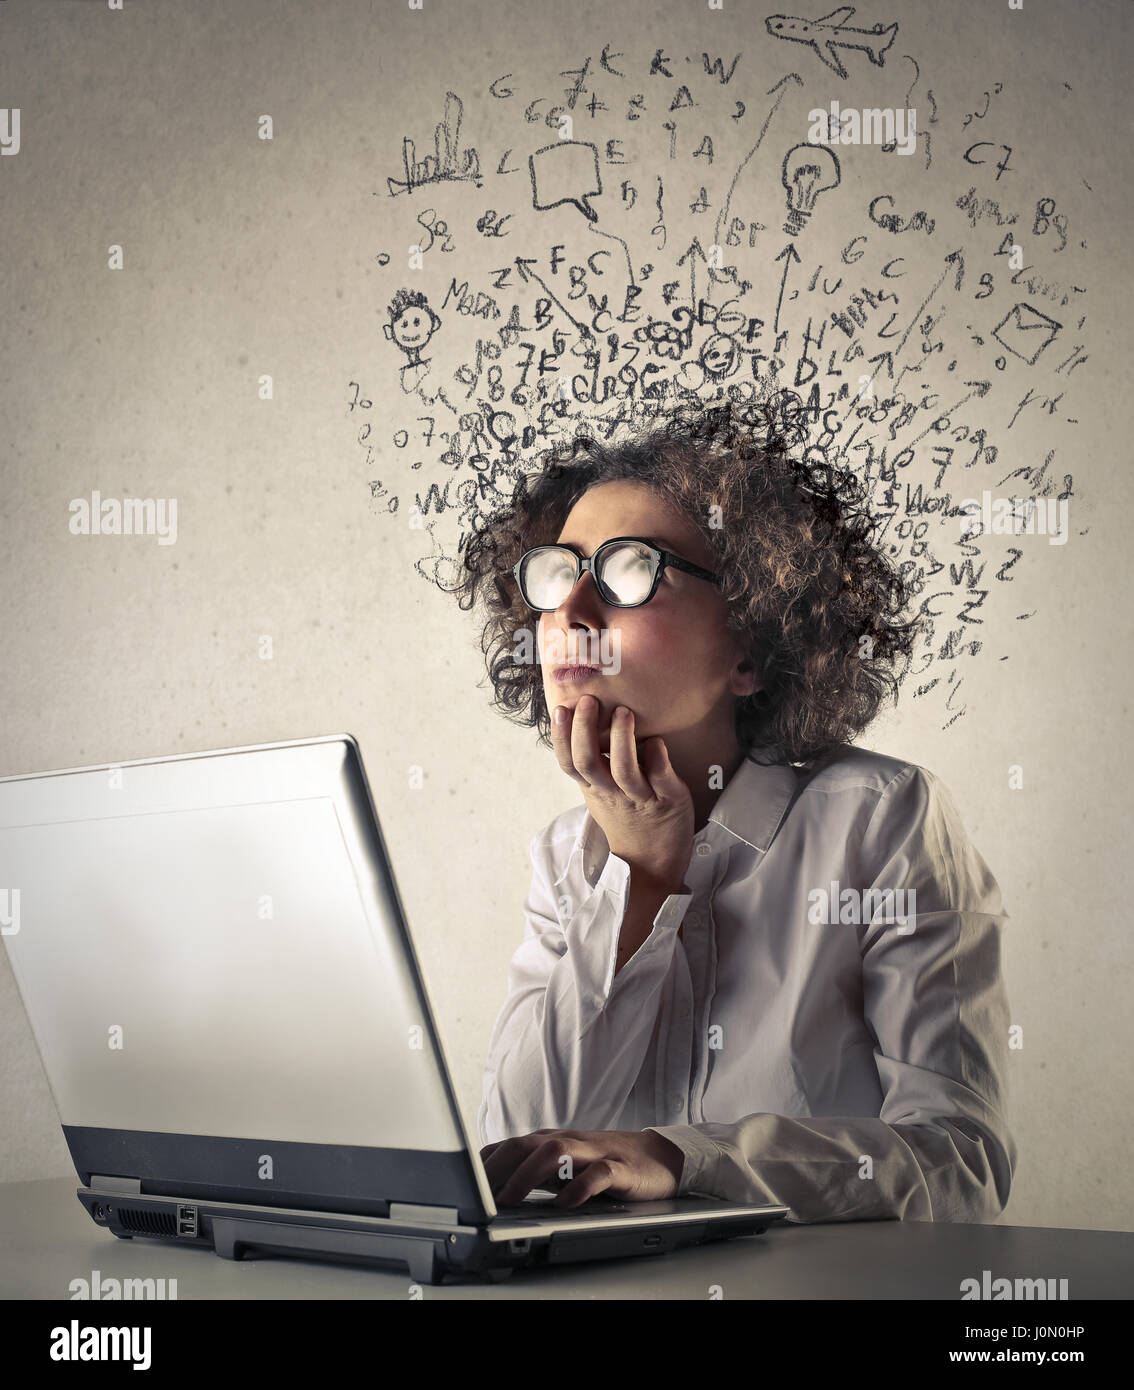 Woman thinking in front of laptop Photo Stock